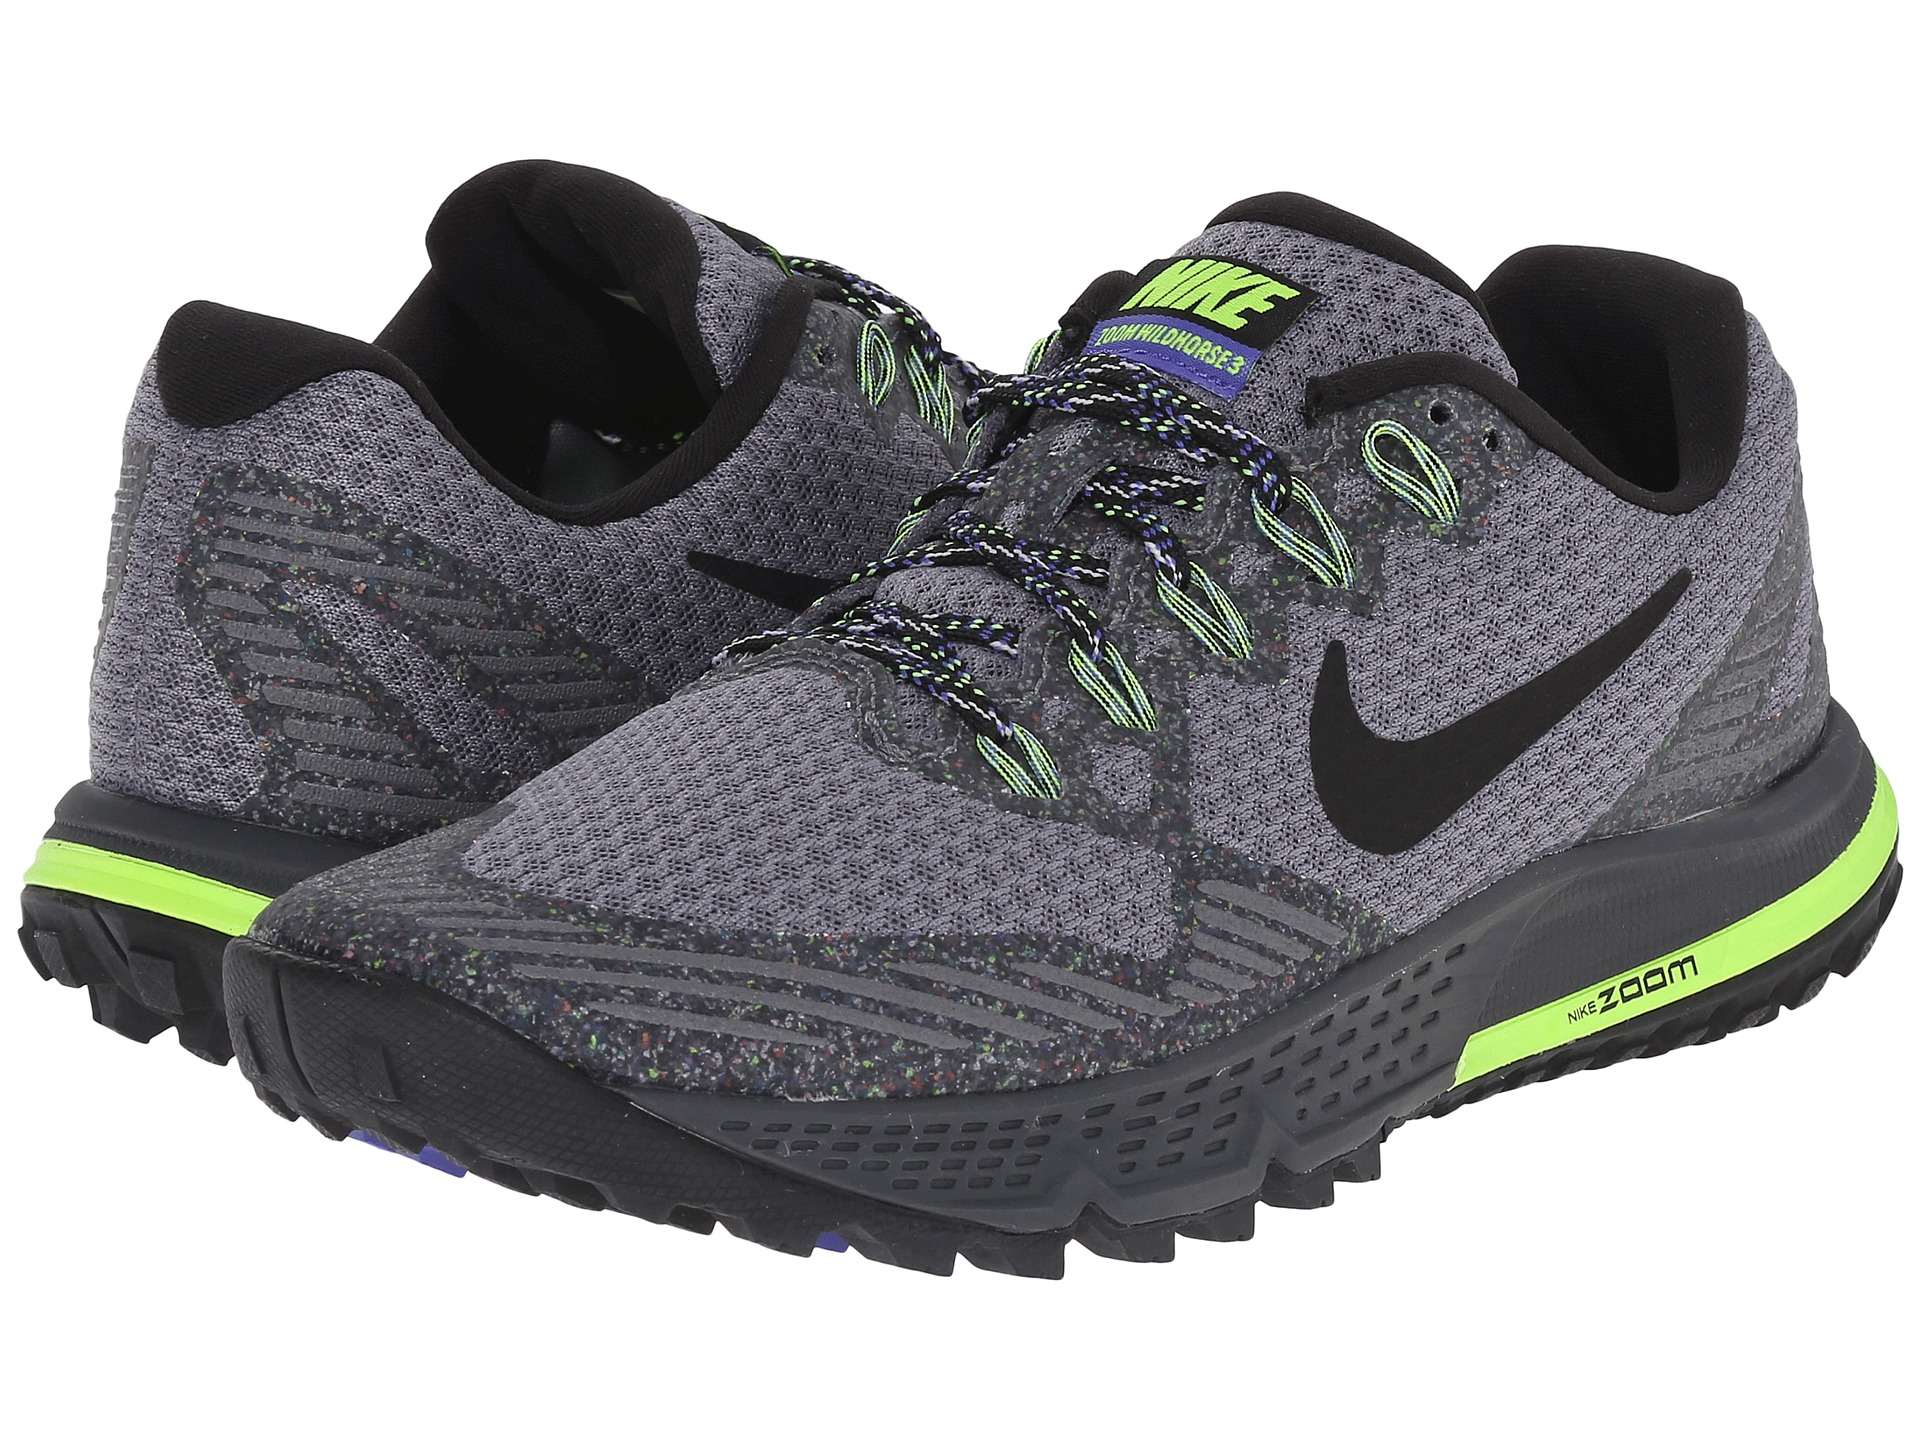 promo code aa63a 893bd Nike Air Zoom Wildhorse 3 in Gray - Lyst